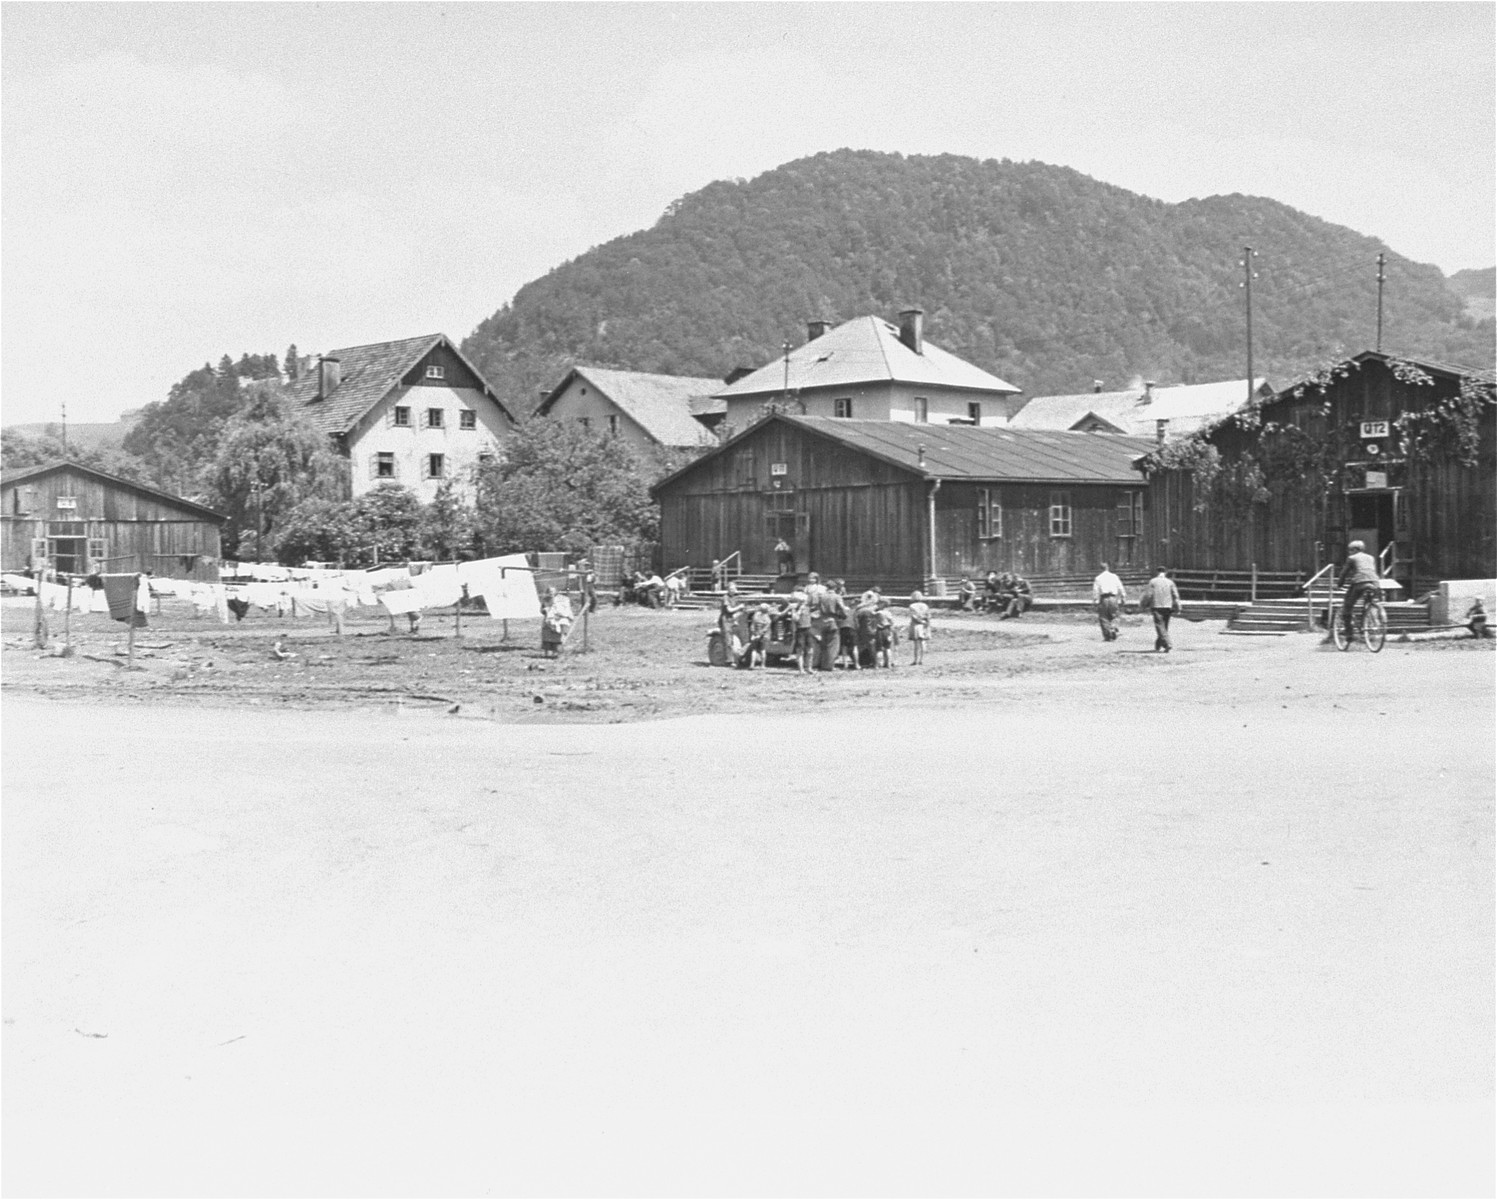 View of one of the Salzburg displaced persons camps.